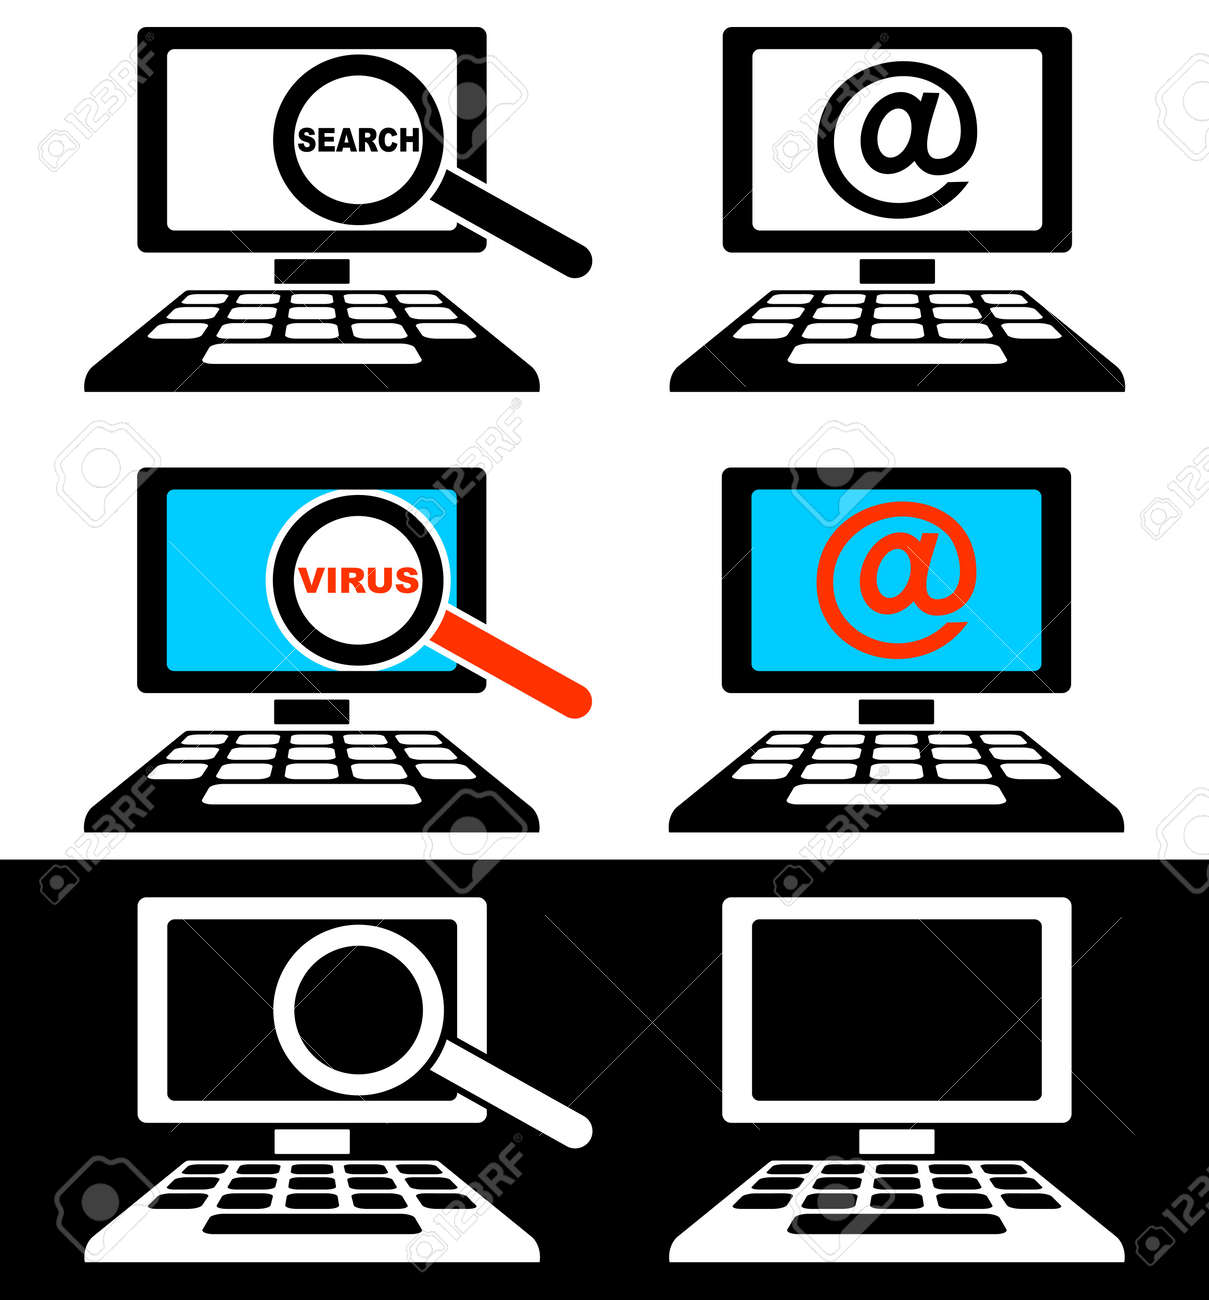 Set of icons of computer monitors on a black and white background. Stock Vector - 15365915